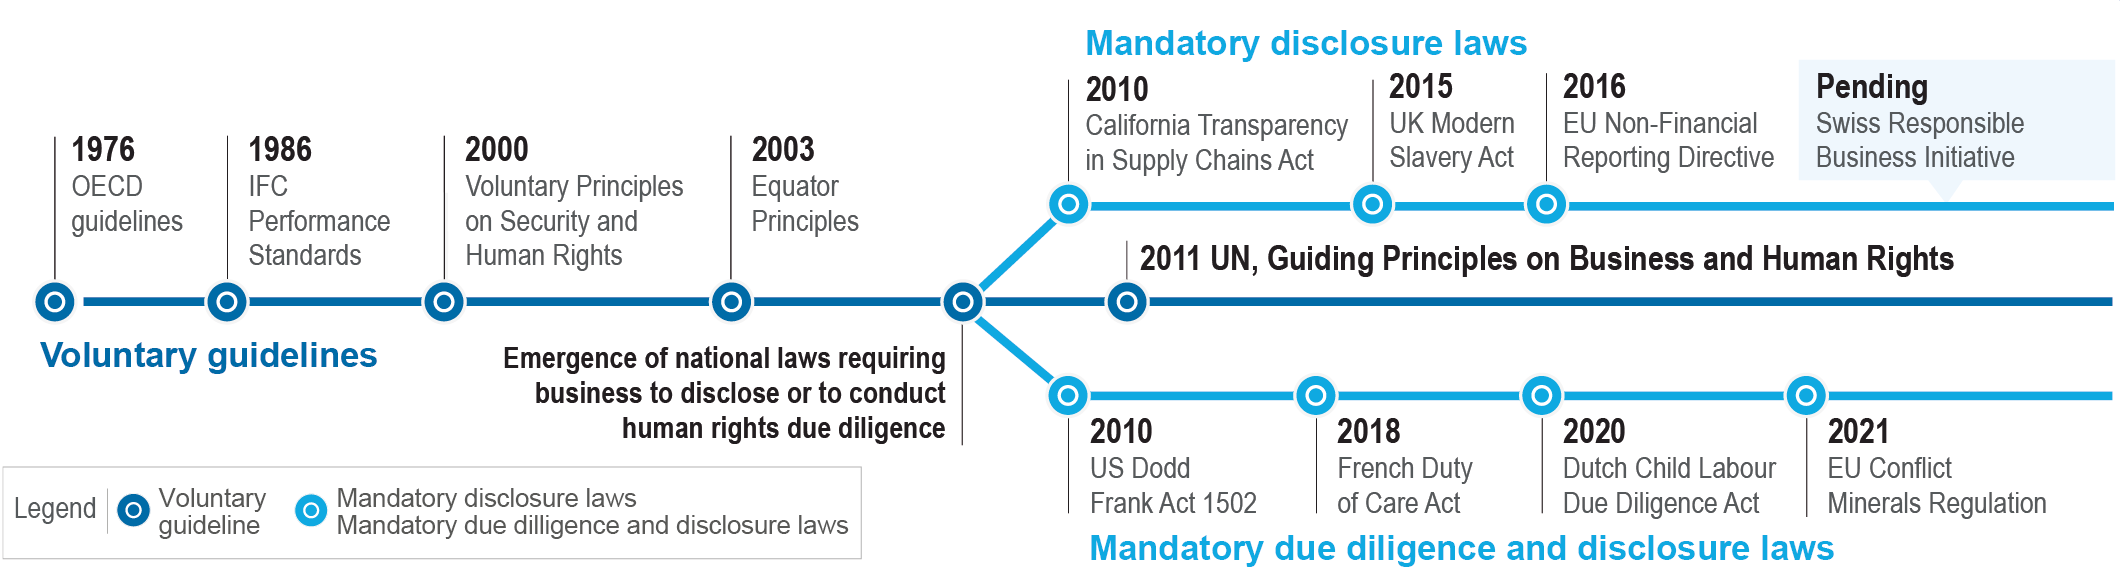 Emerging national law on human rights due diligence_HRO 2017 mandatory supply chain reporting